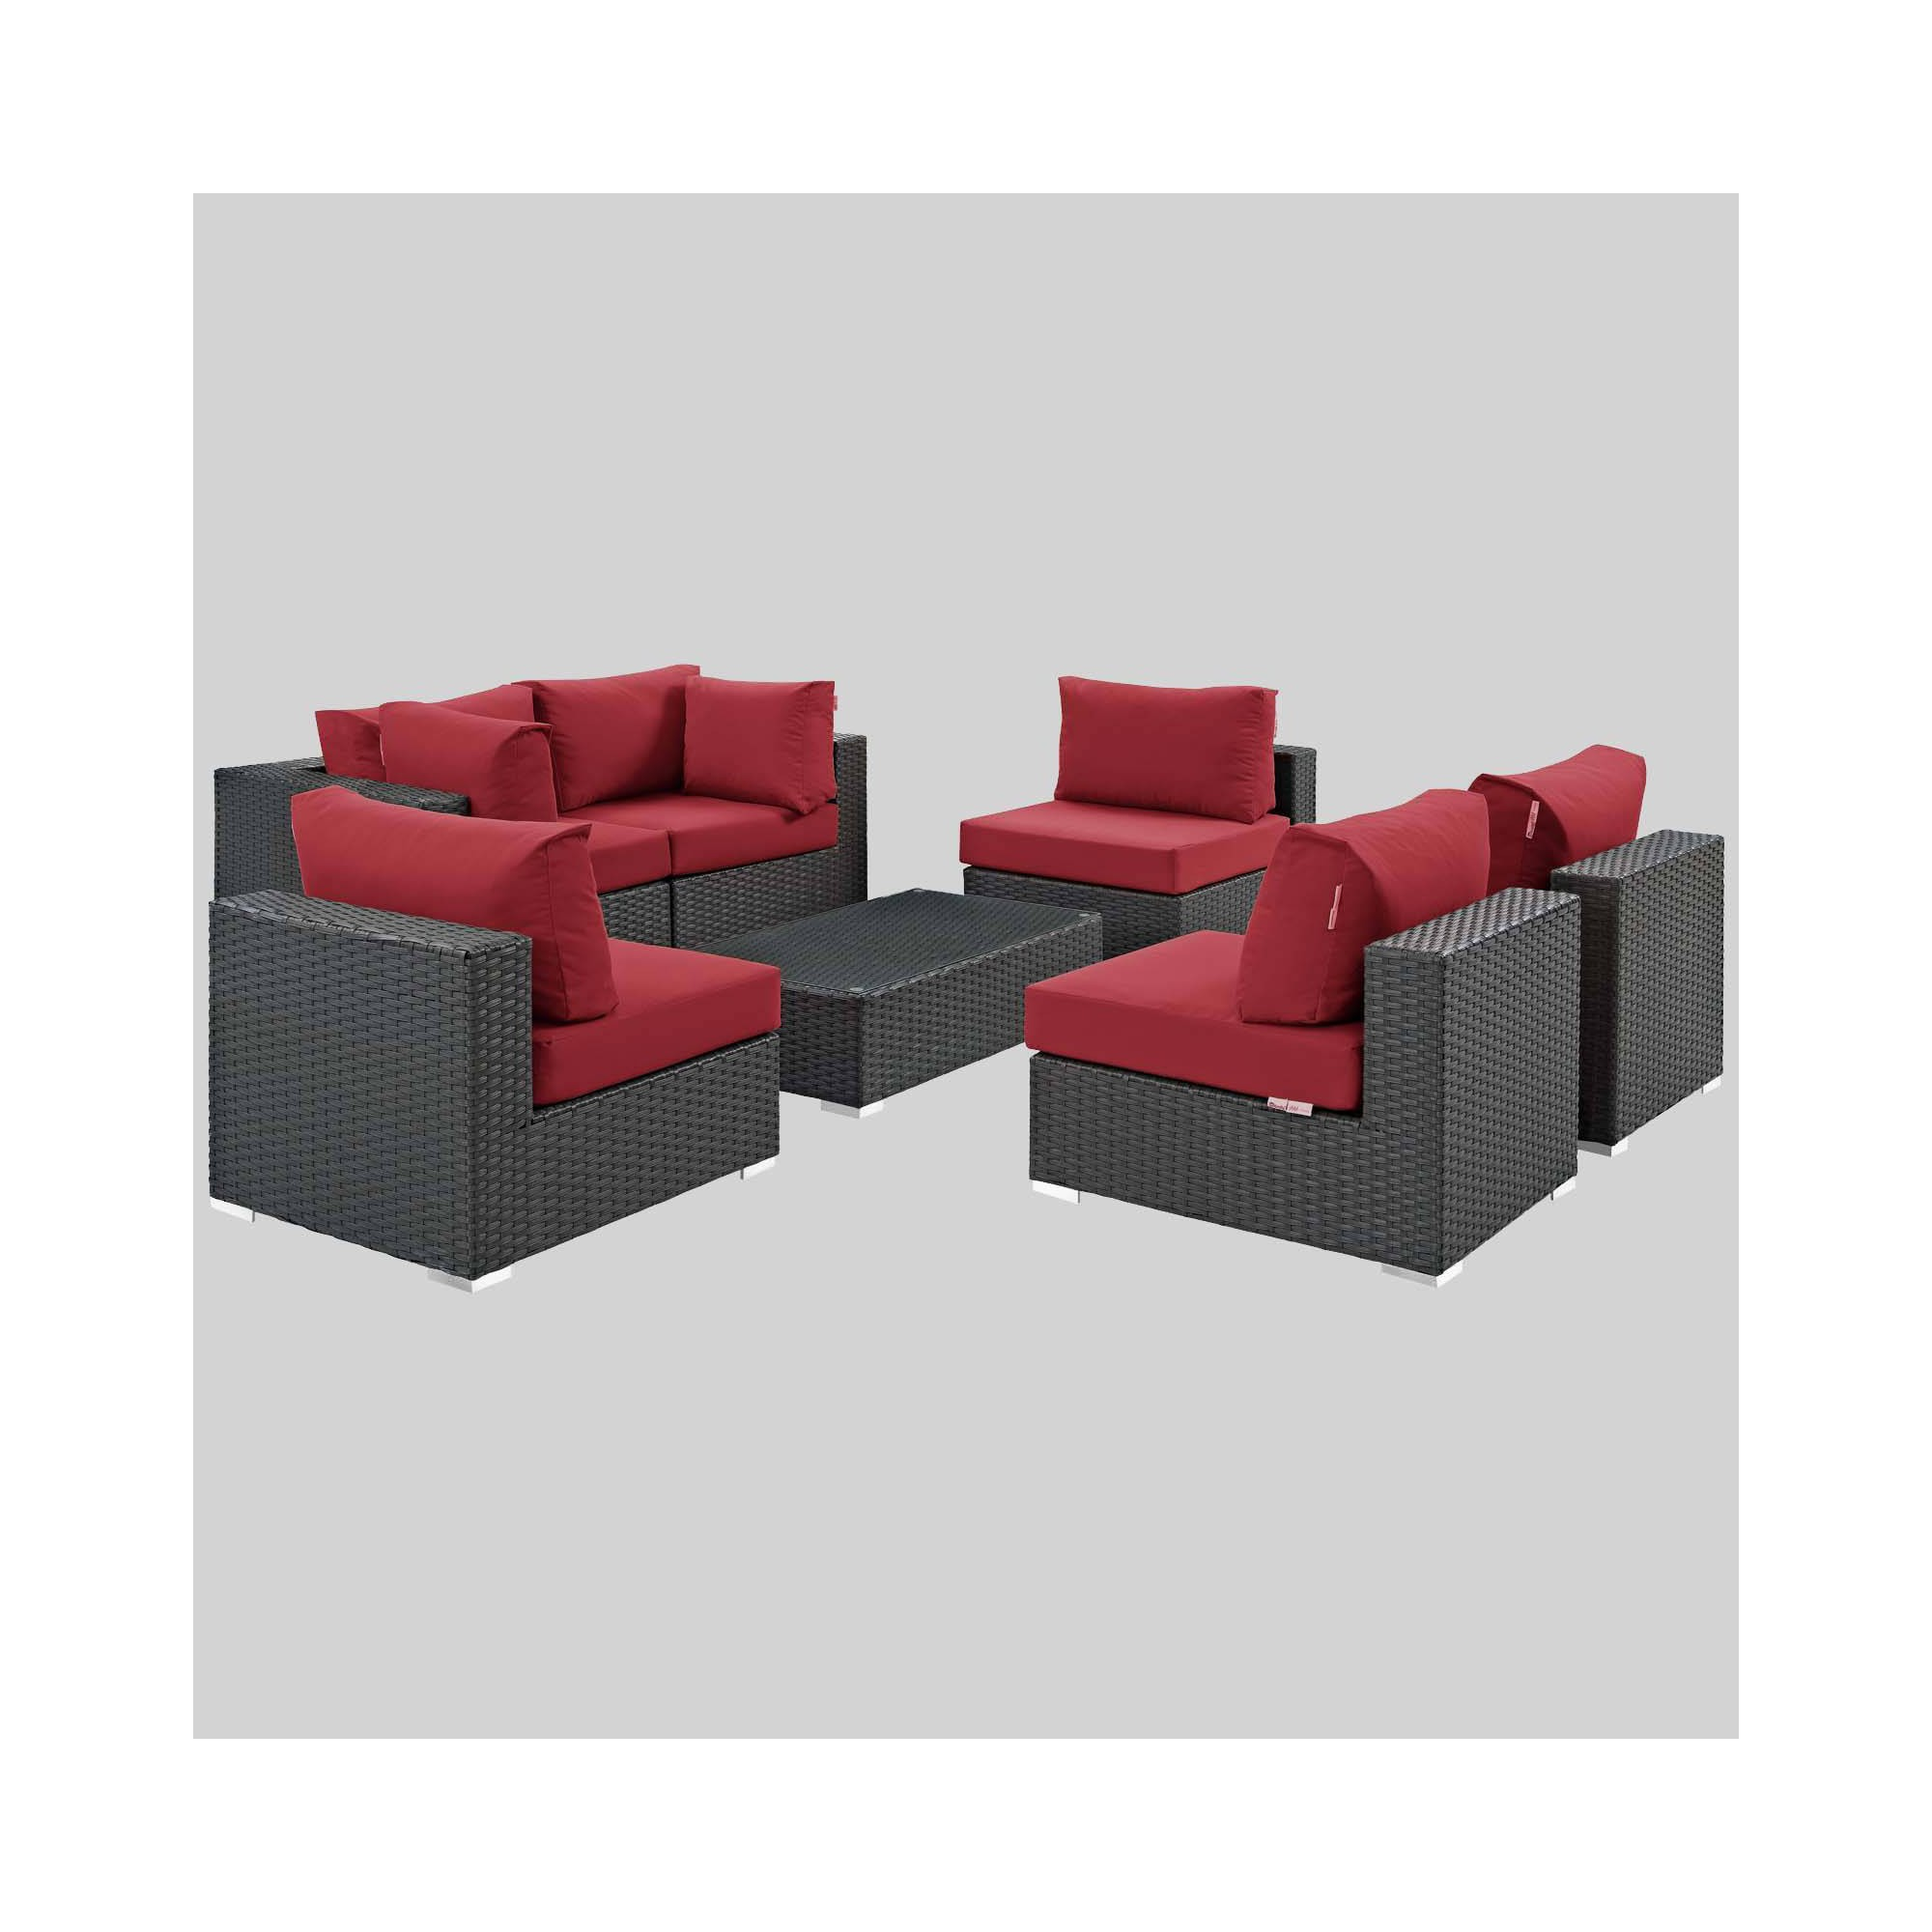 Sojourn 7pc Outdoor Patio Sectional Set with Sunbrella Fabric - Red - Modway